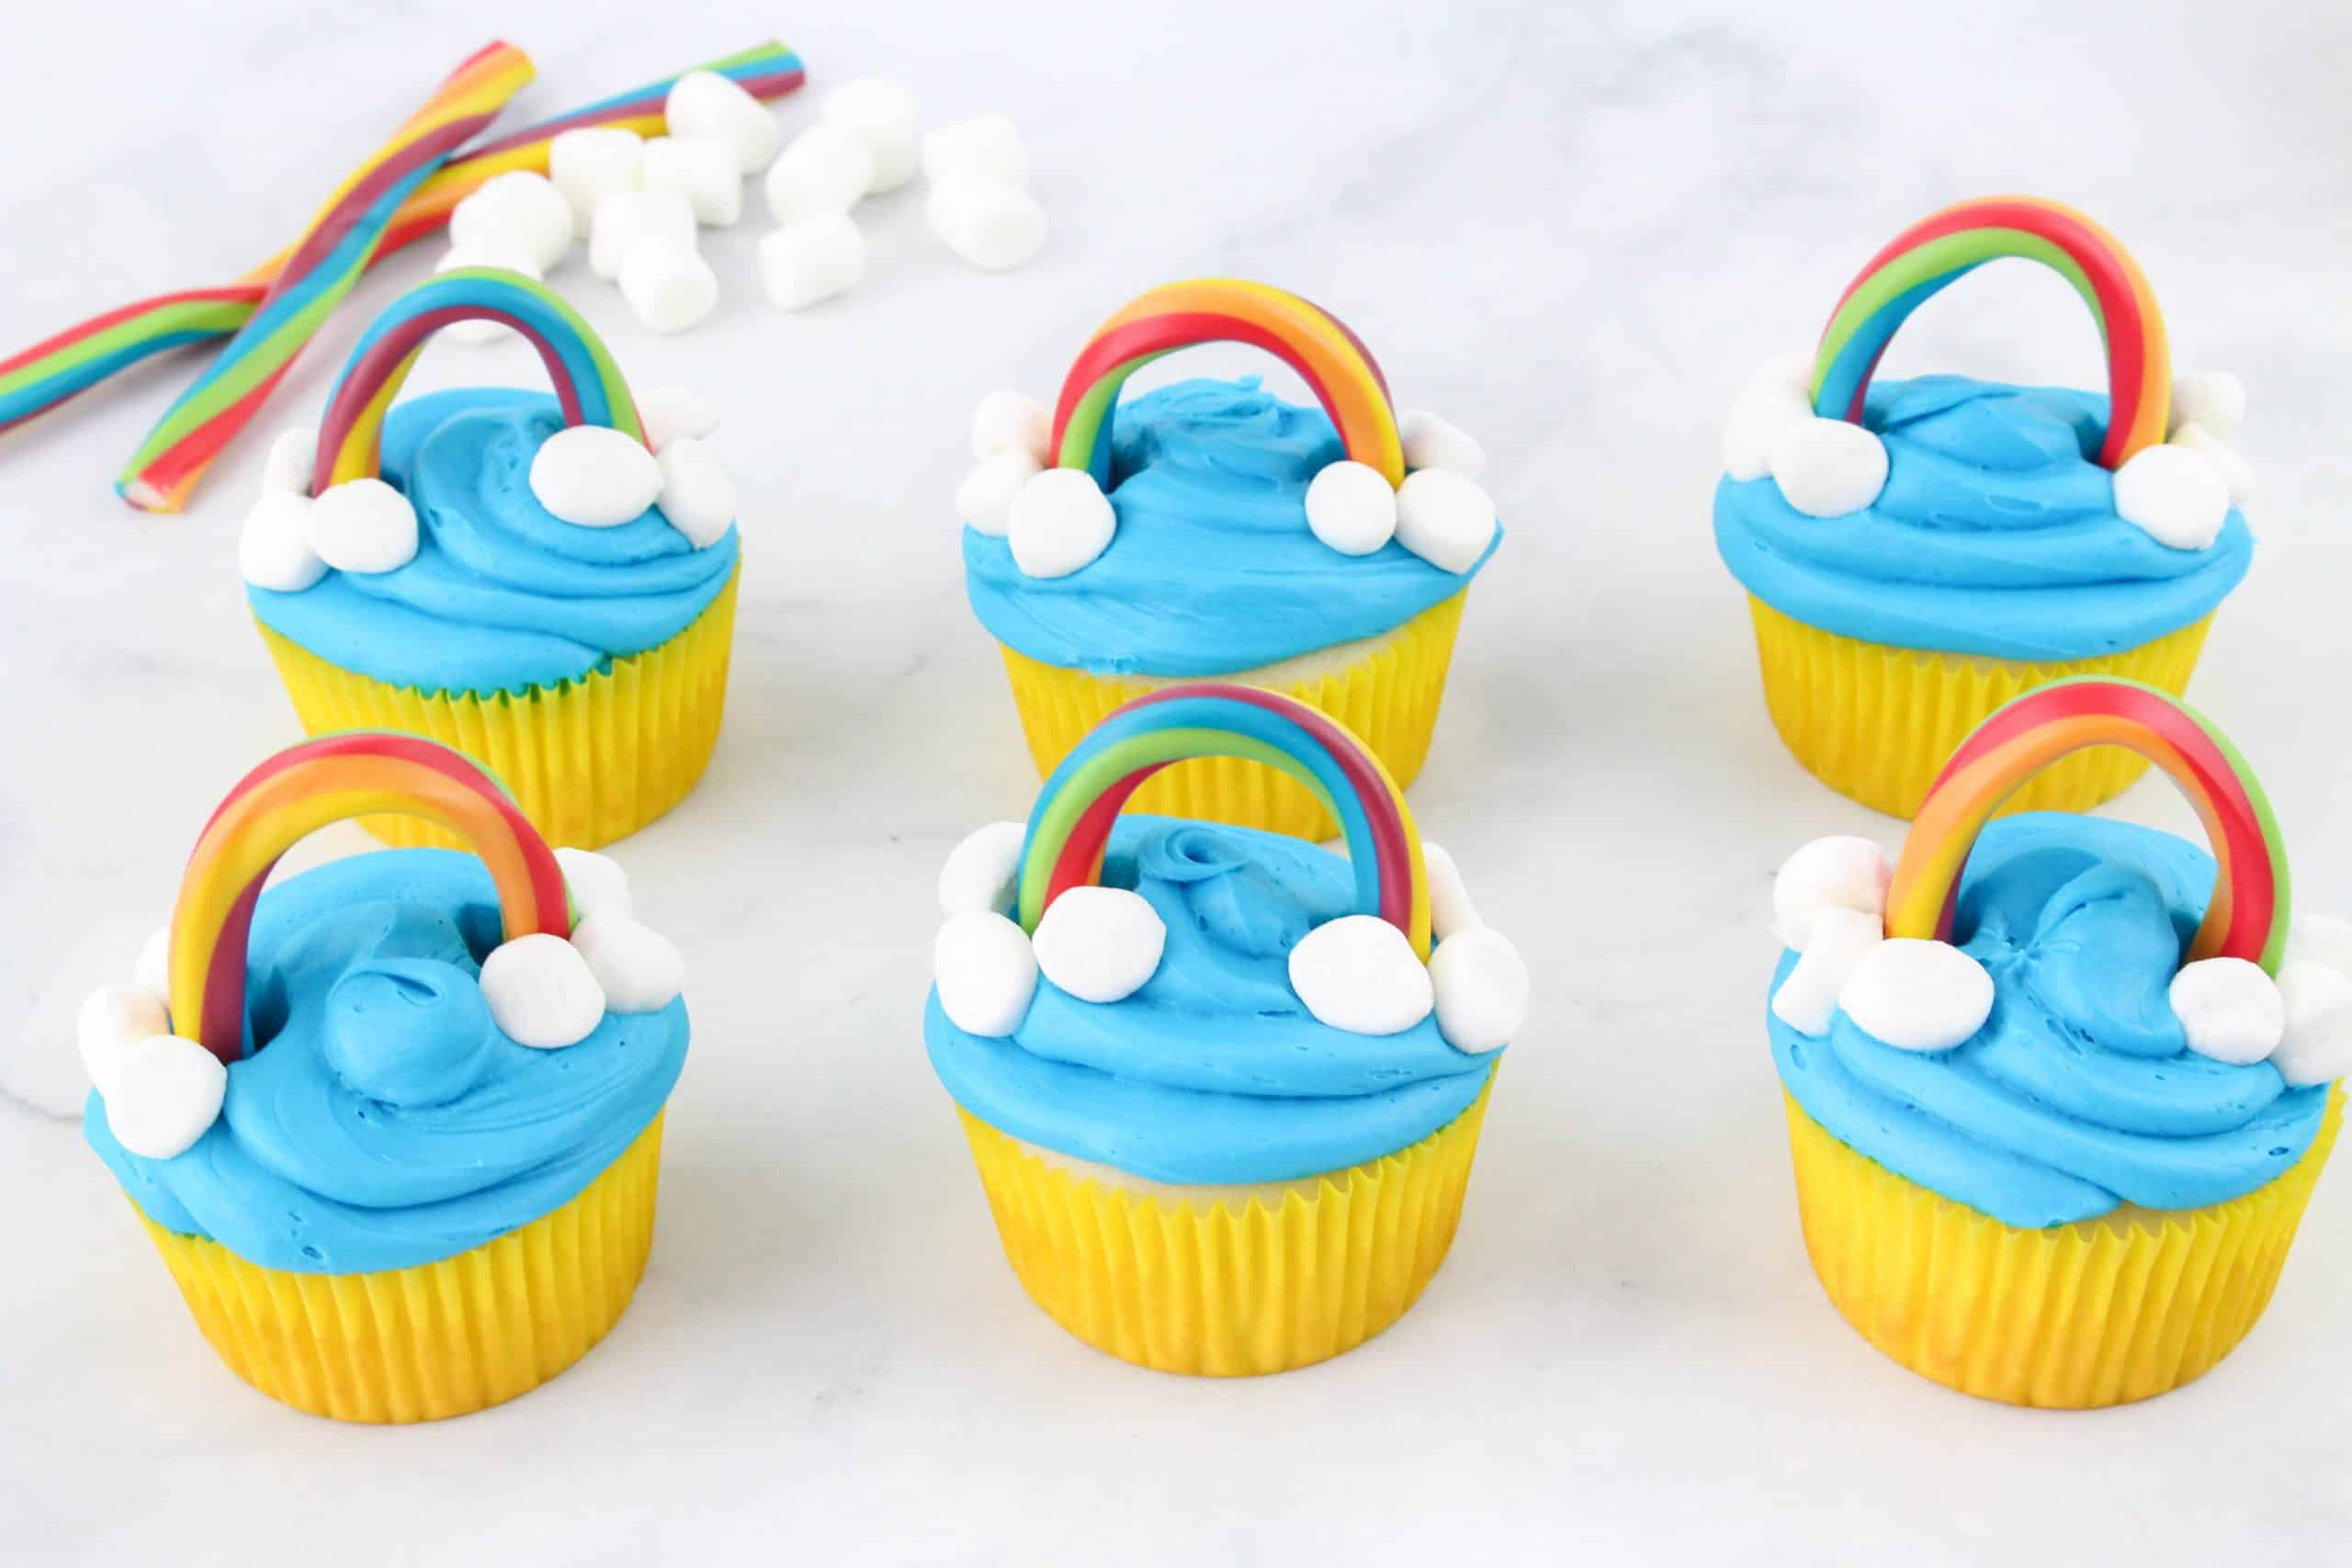 Group of Rainbow Cupcakes